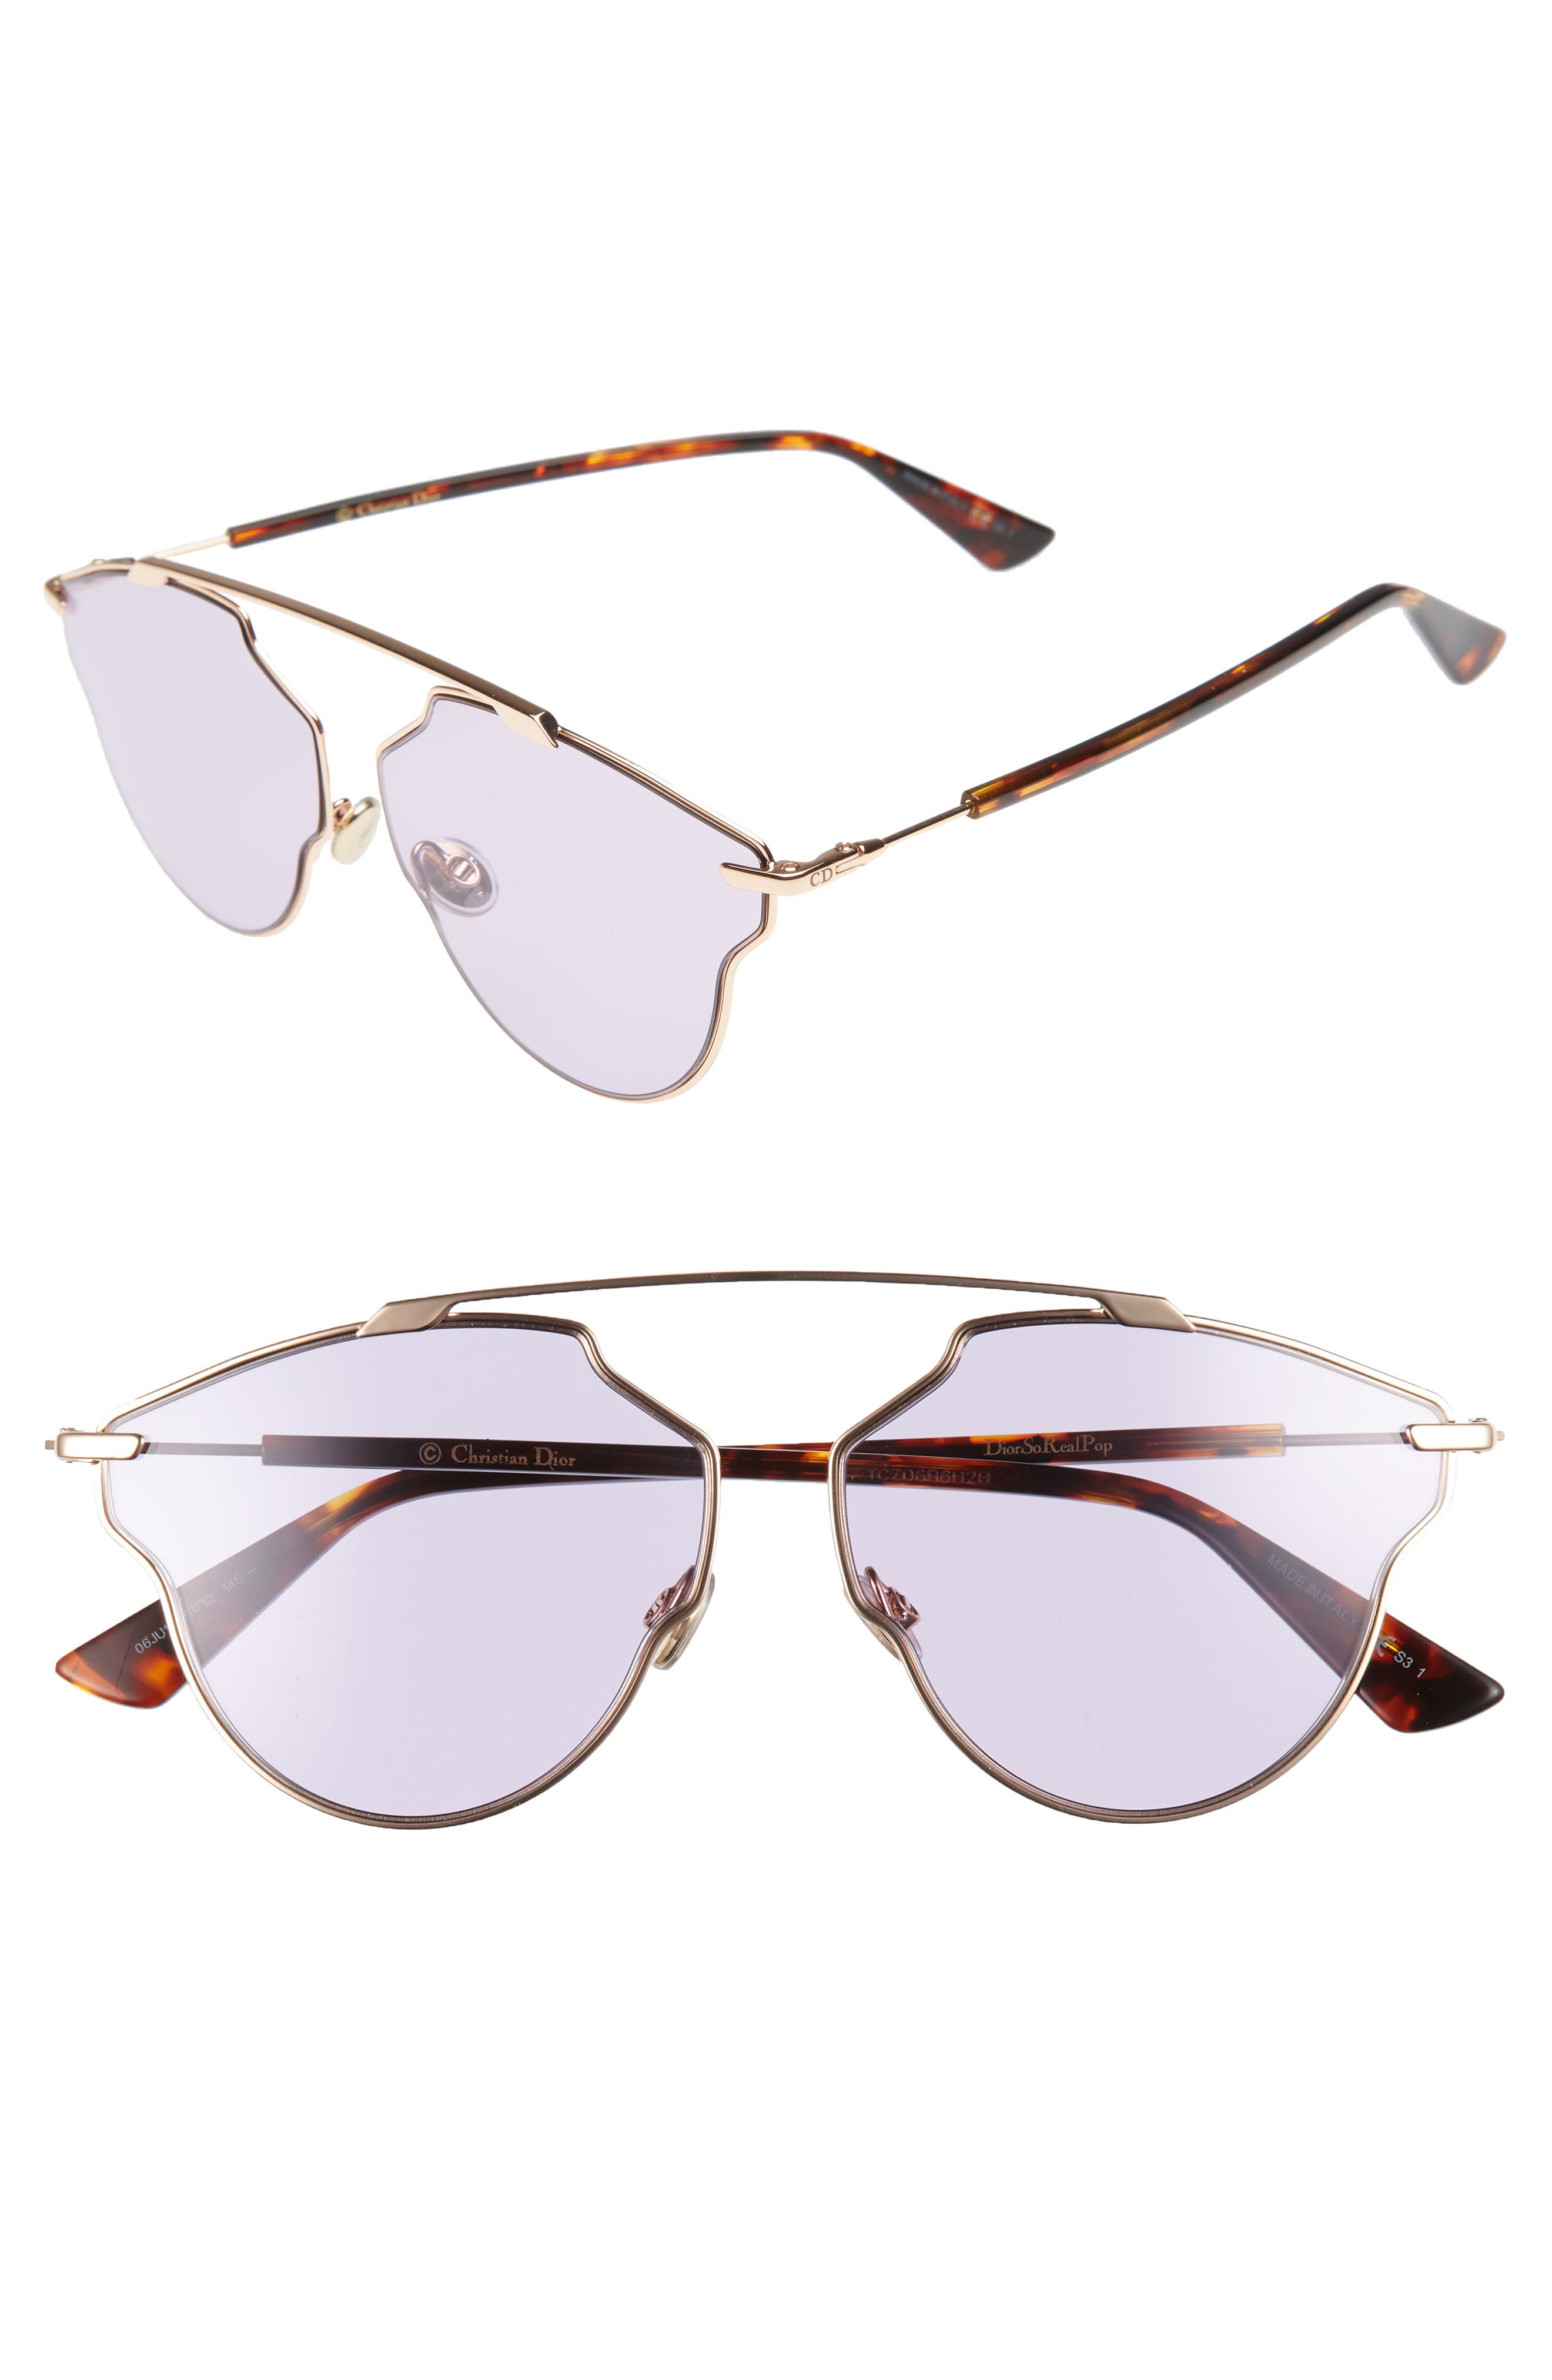 Alternate Image 1 Selected - Christian Dior So Real Pop 59mm Sunglasses